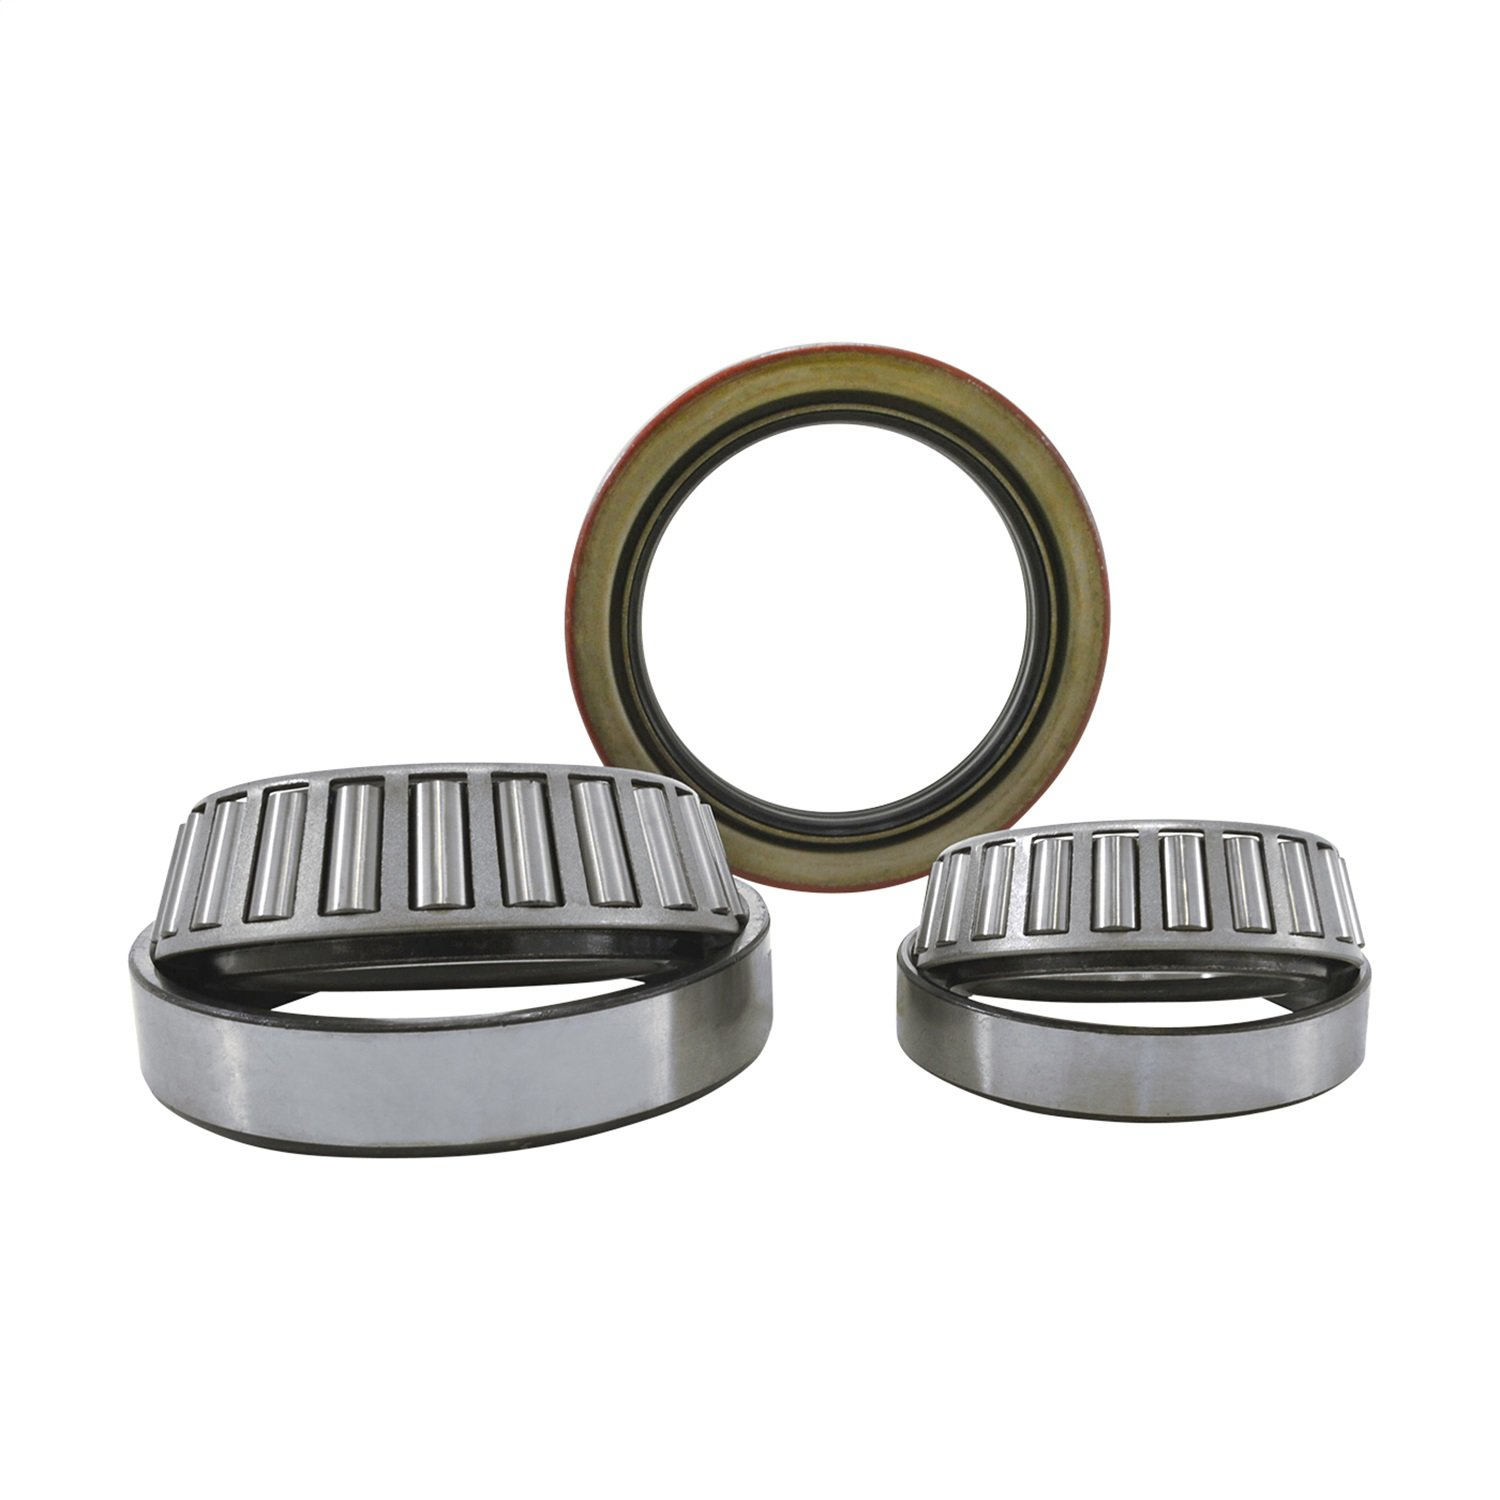 Yukon (AK F10.5-A) Axle Bearing and Seal Kit for Ford 10.5' Rear Differential Yukon Gear